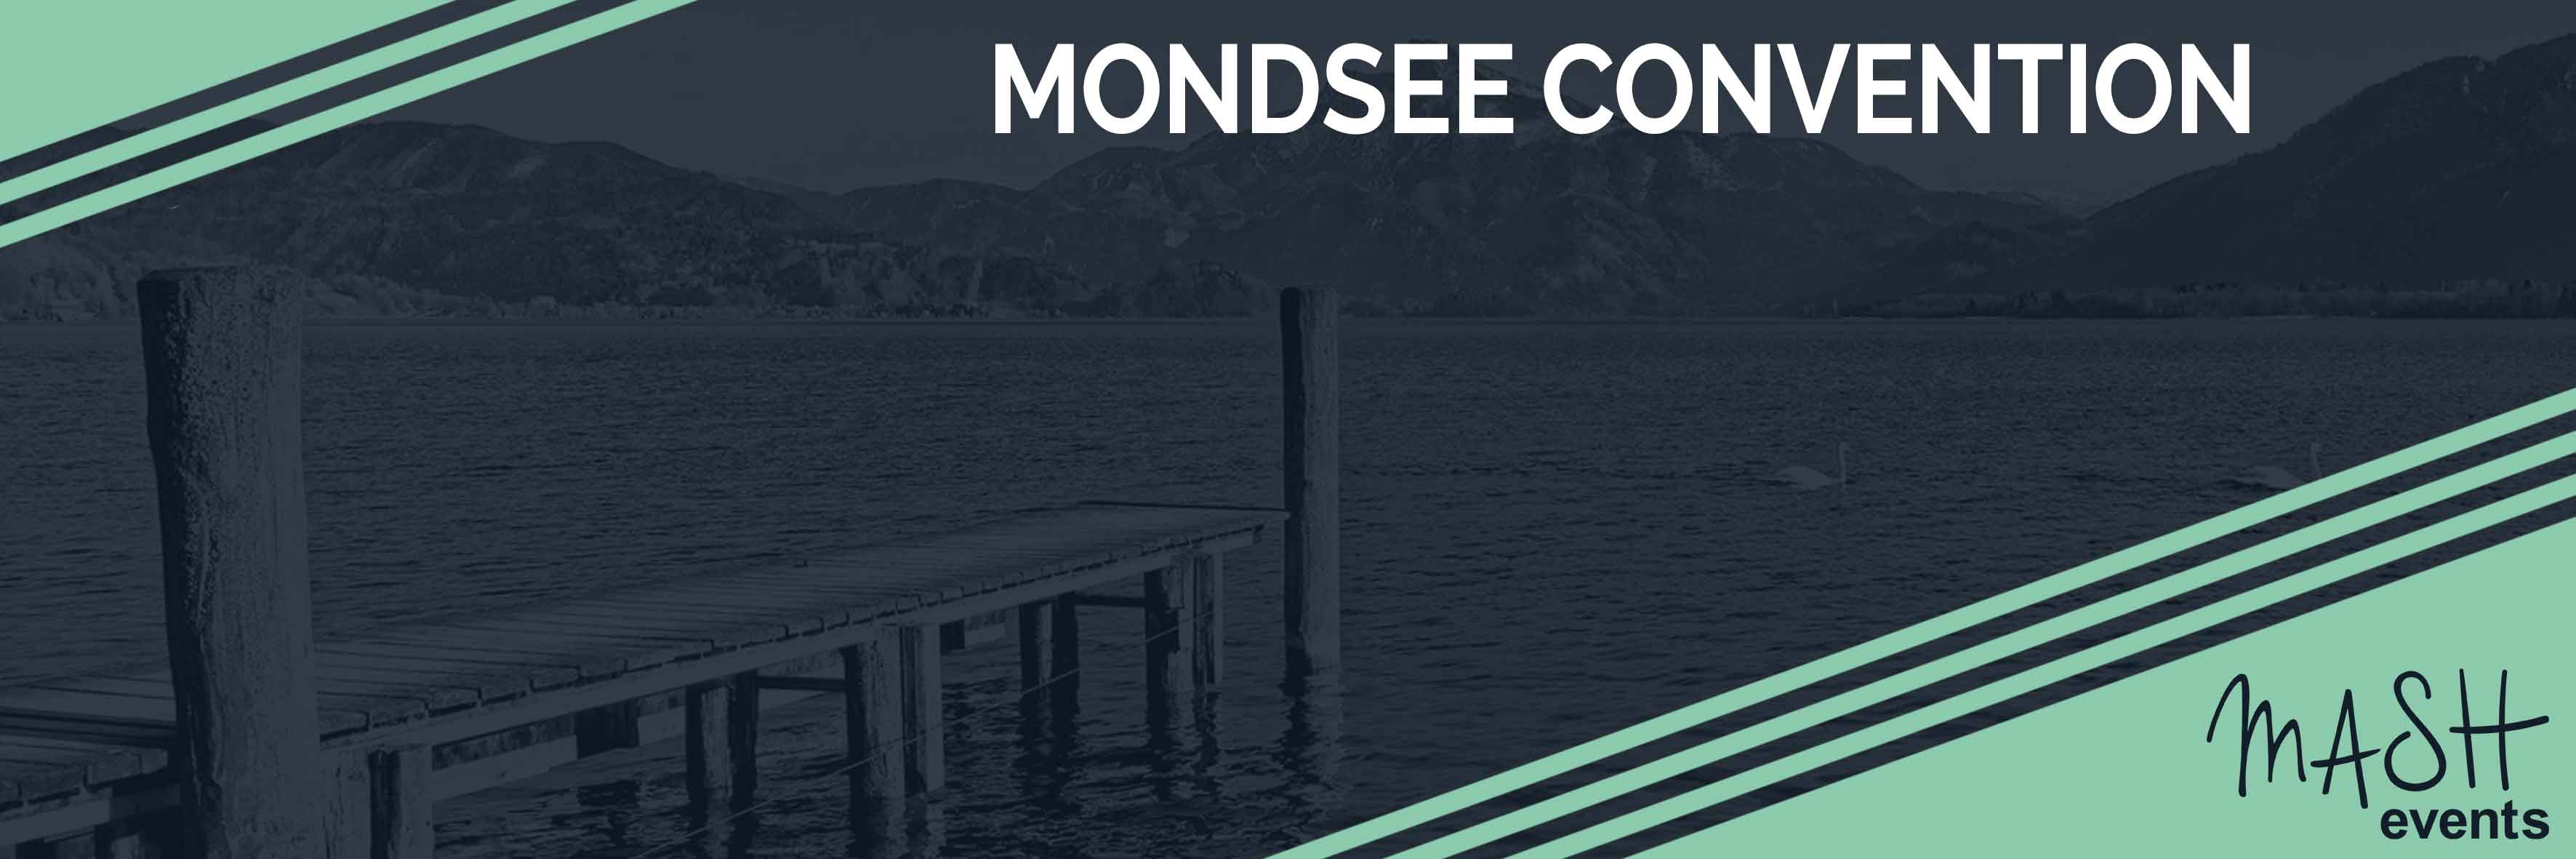 mondsee-convention